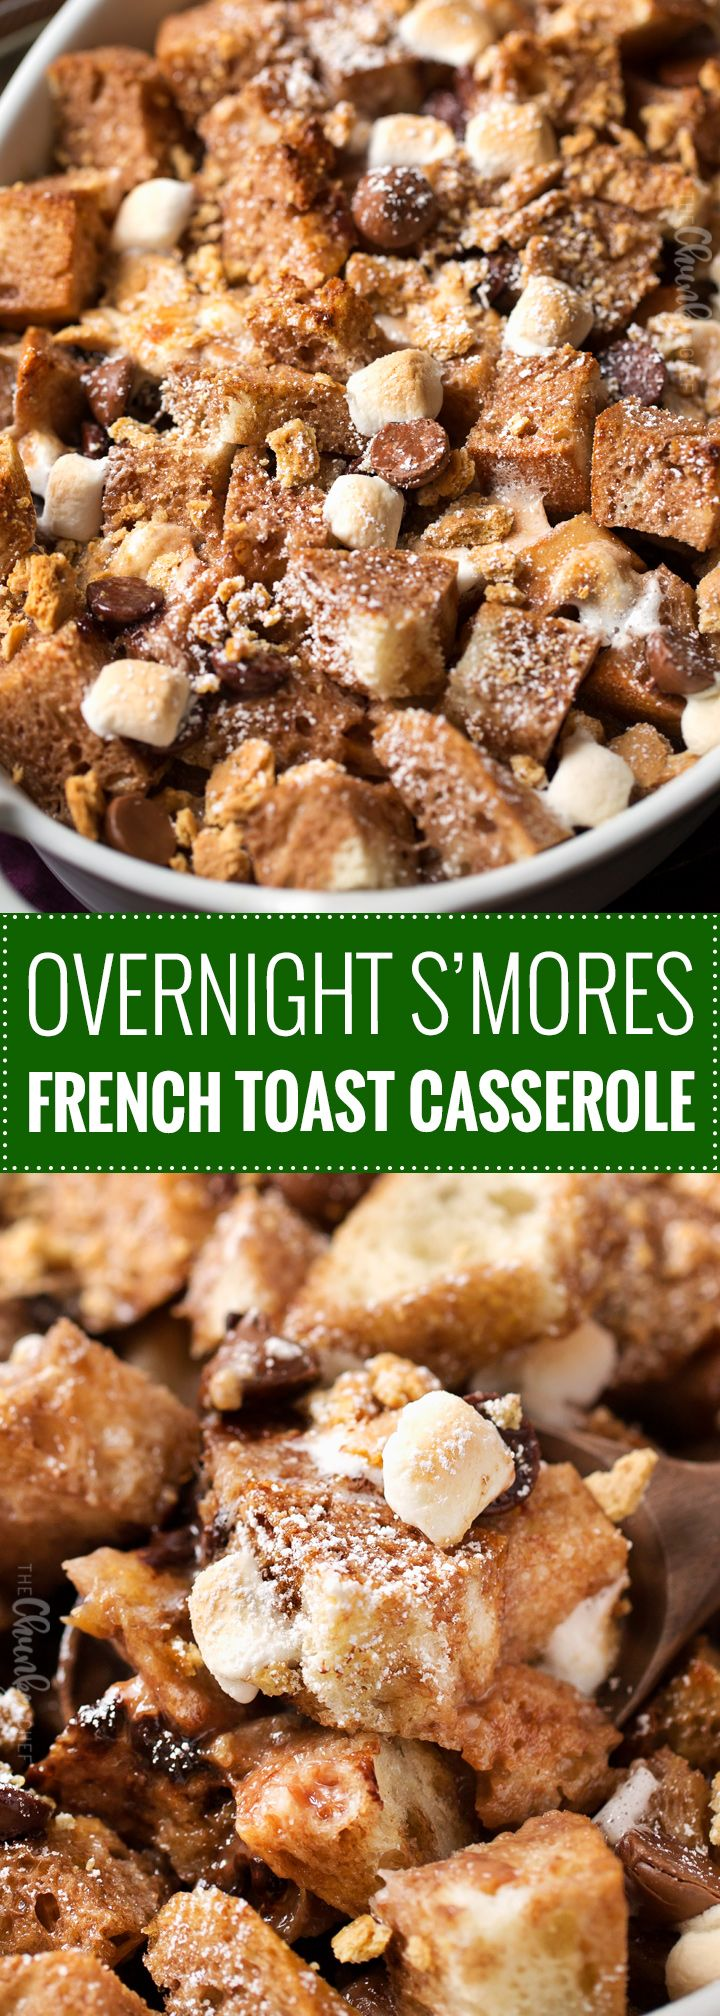 Overnight S'mores French Toast Casserole   Perfect for a holiday breakfast or brunch, sourdough bread is mixed with chocolate chips, marshmallows and graham crackers, then baked up into pure French toast perfection!   https://thechunkychef.com   #frenchtoast #breakfast #brunch #casserole